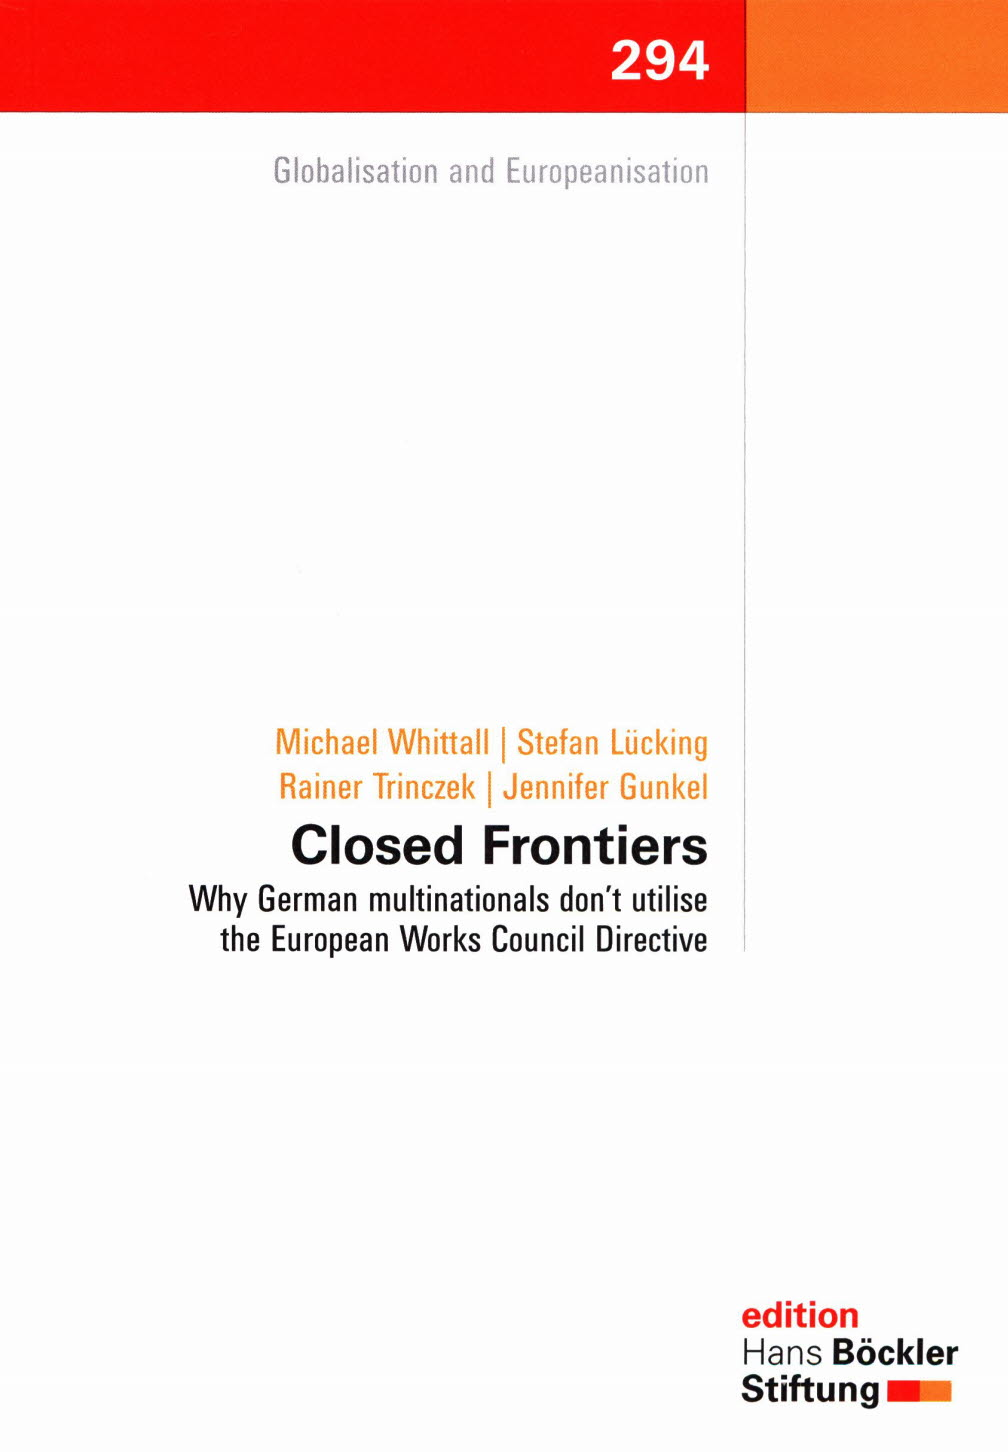 Closed Frontiers